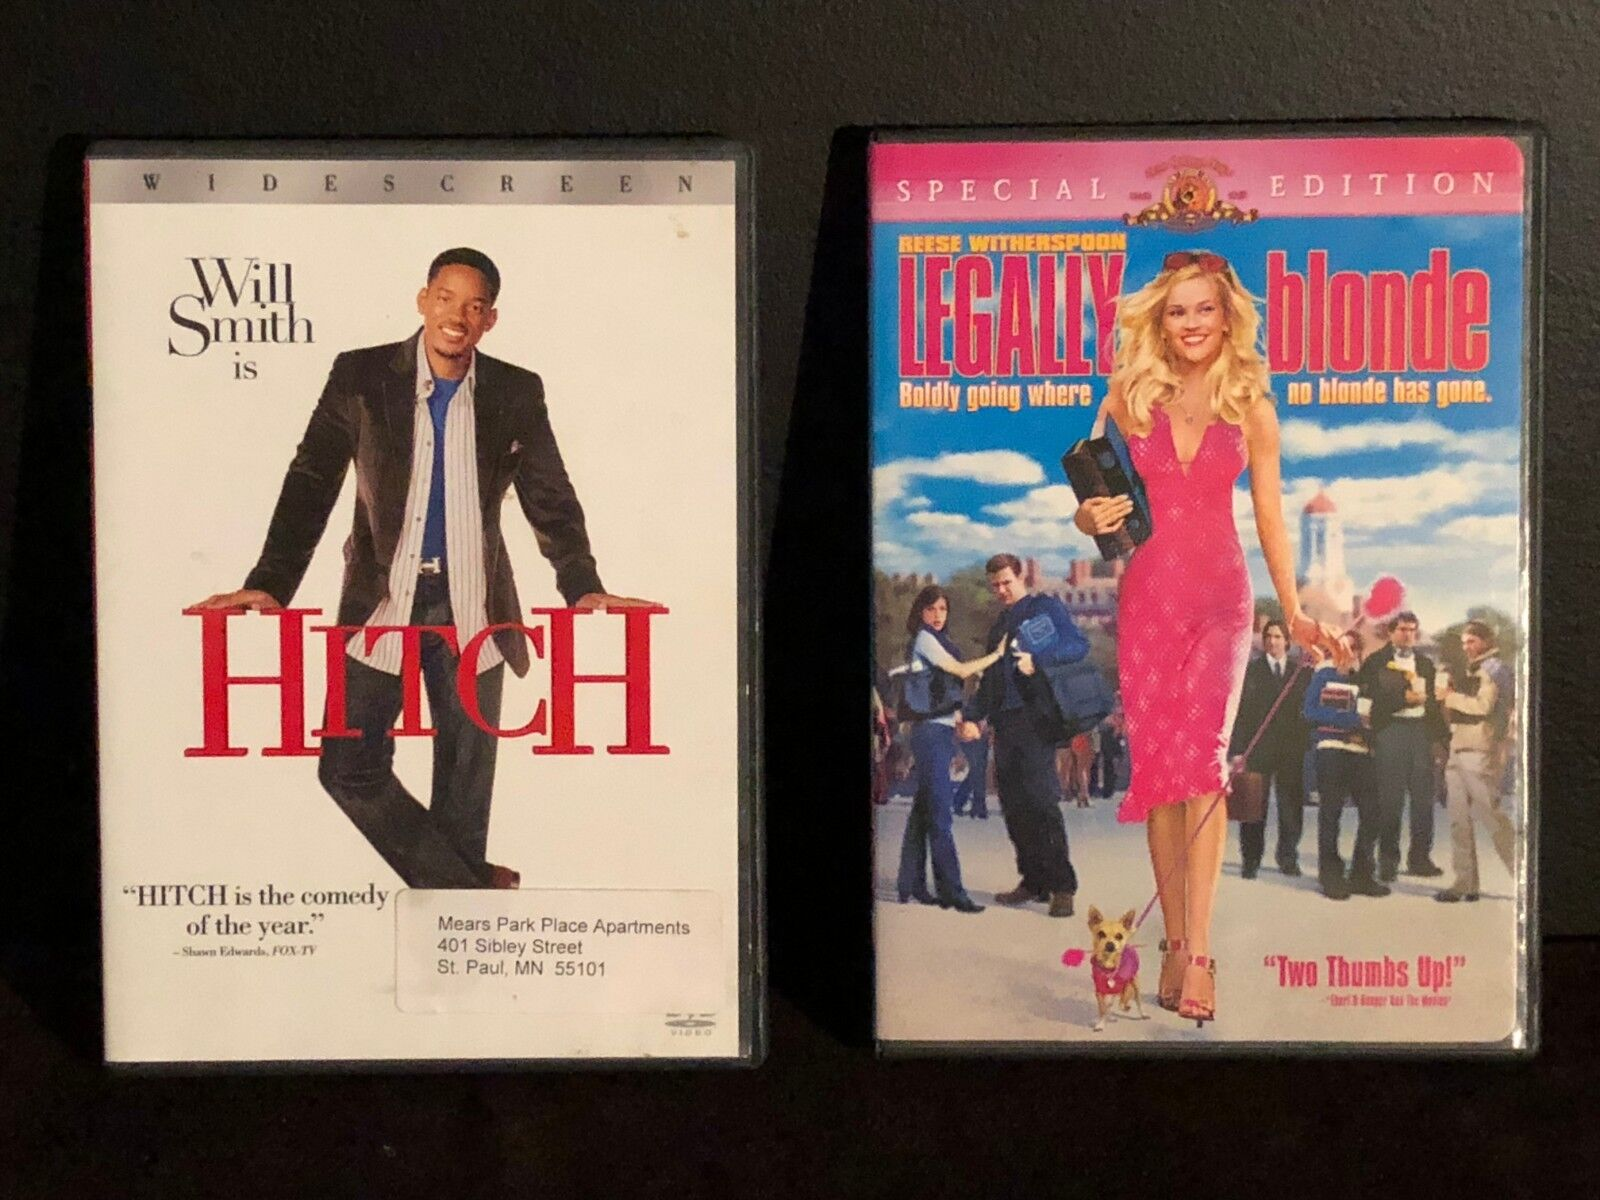 Lot Of 2 Dvds. Includes Hitch And Legally Blonde - $0.99